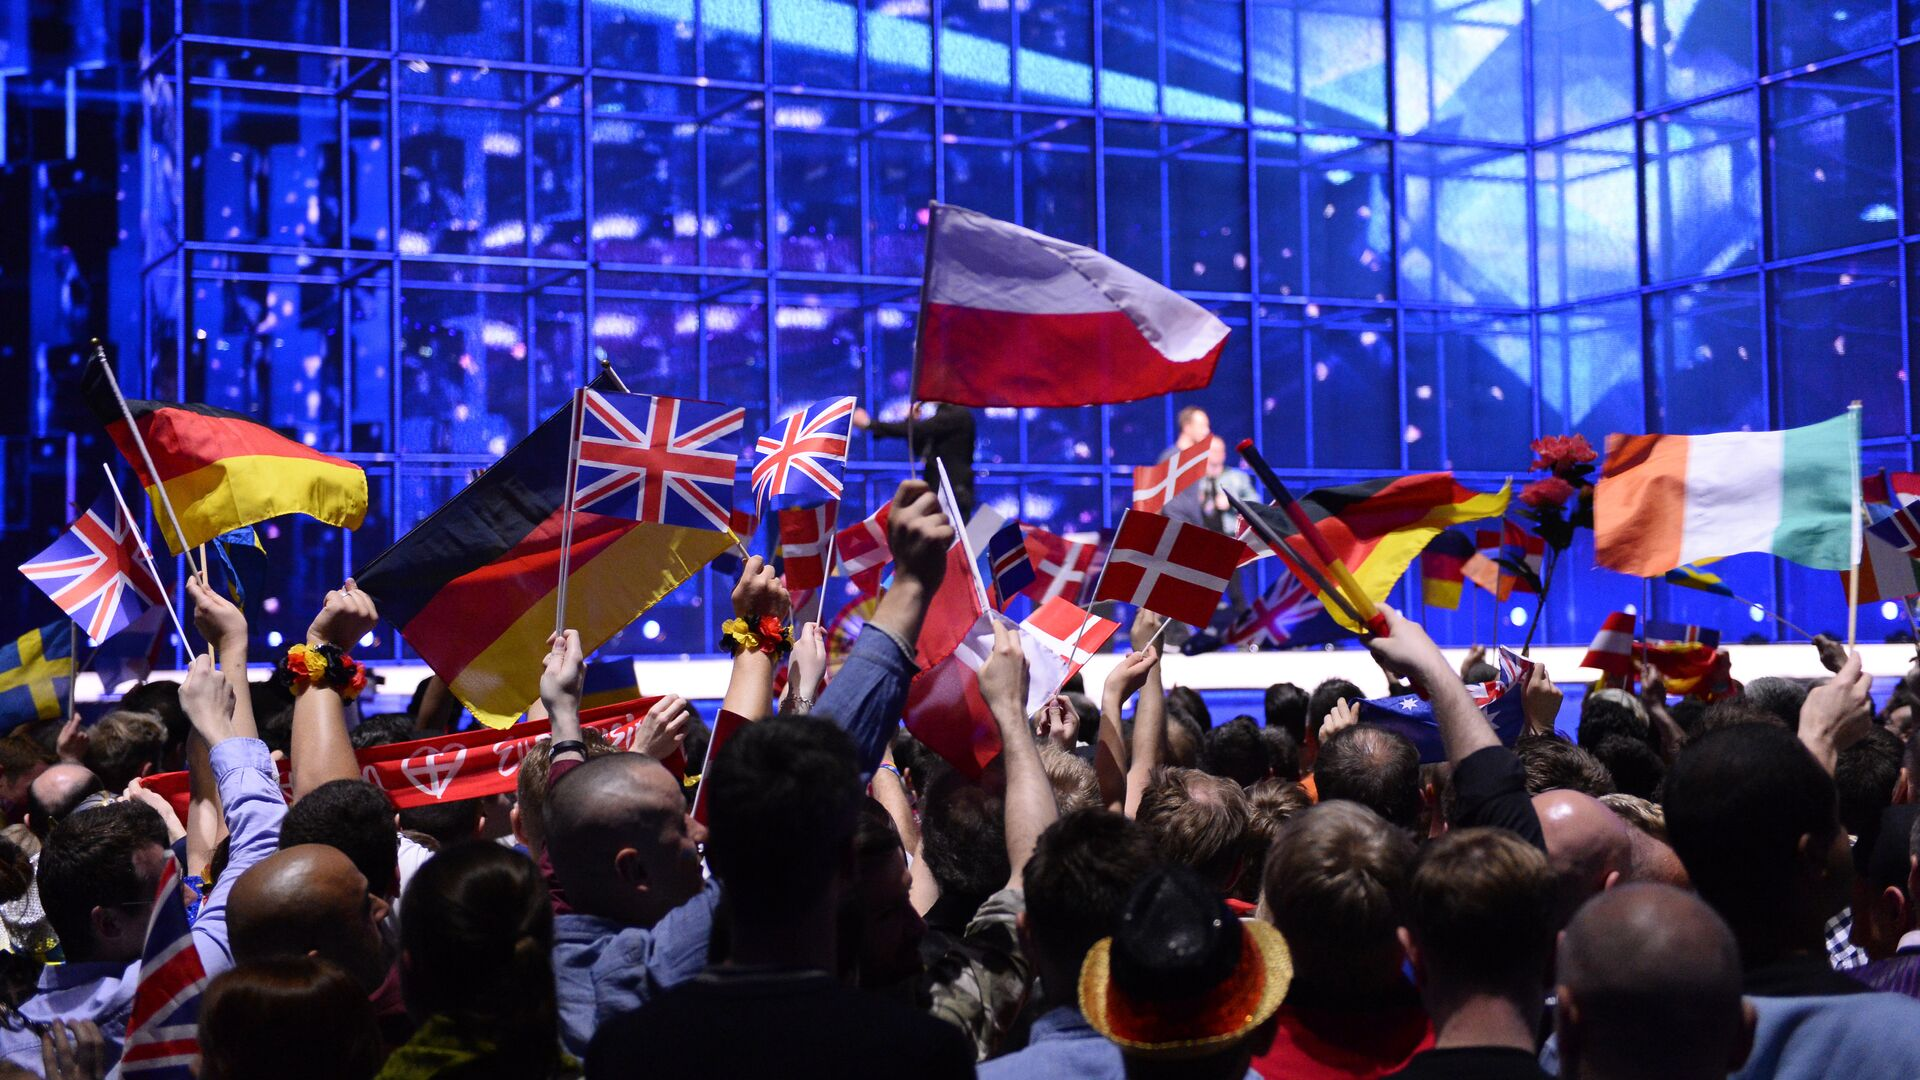 Supporters wave flags ahead of the Eurovision Song Contest 2014 Grand Final in Copenhagen, Denmark, on May 10, 2014 - Sputnik Italia, 1920, 24.08.2021